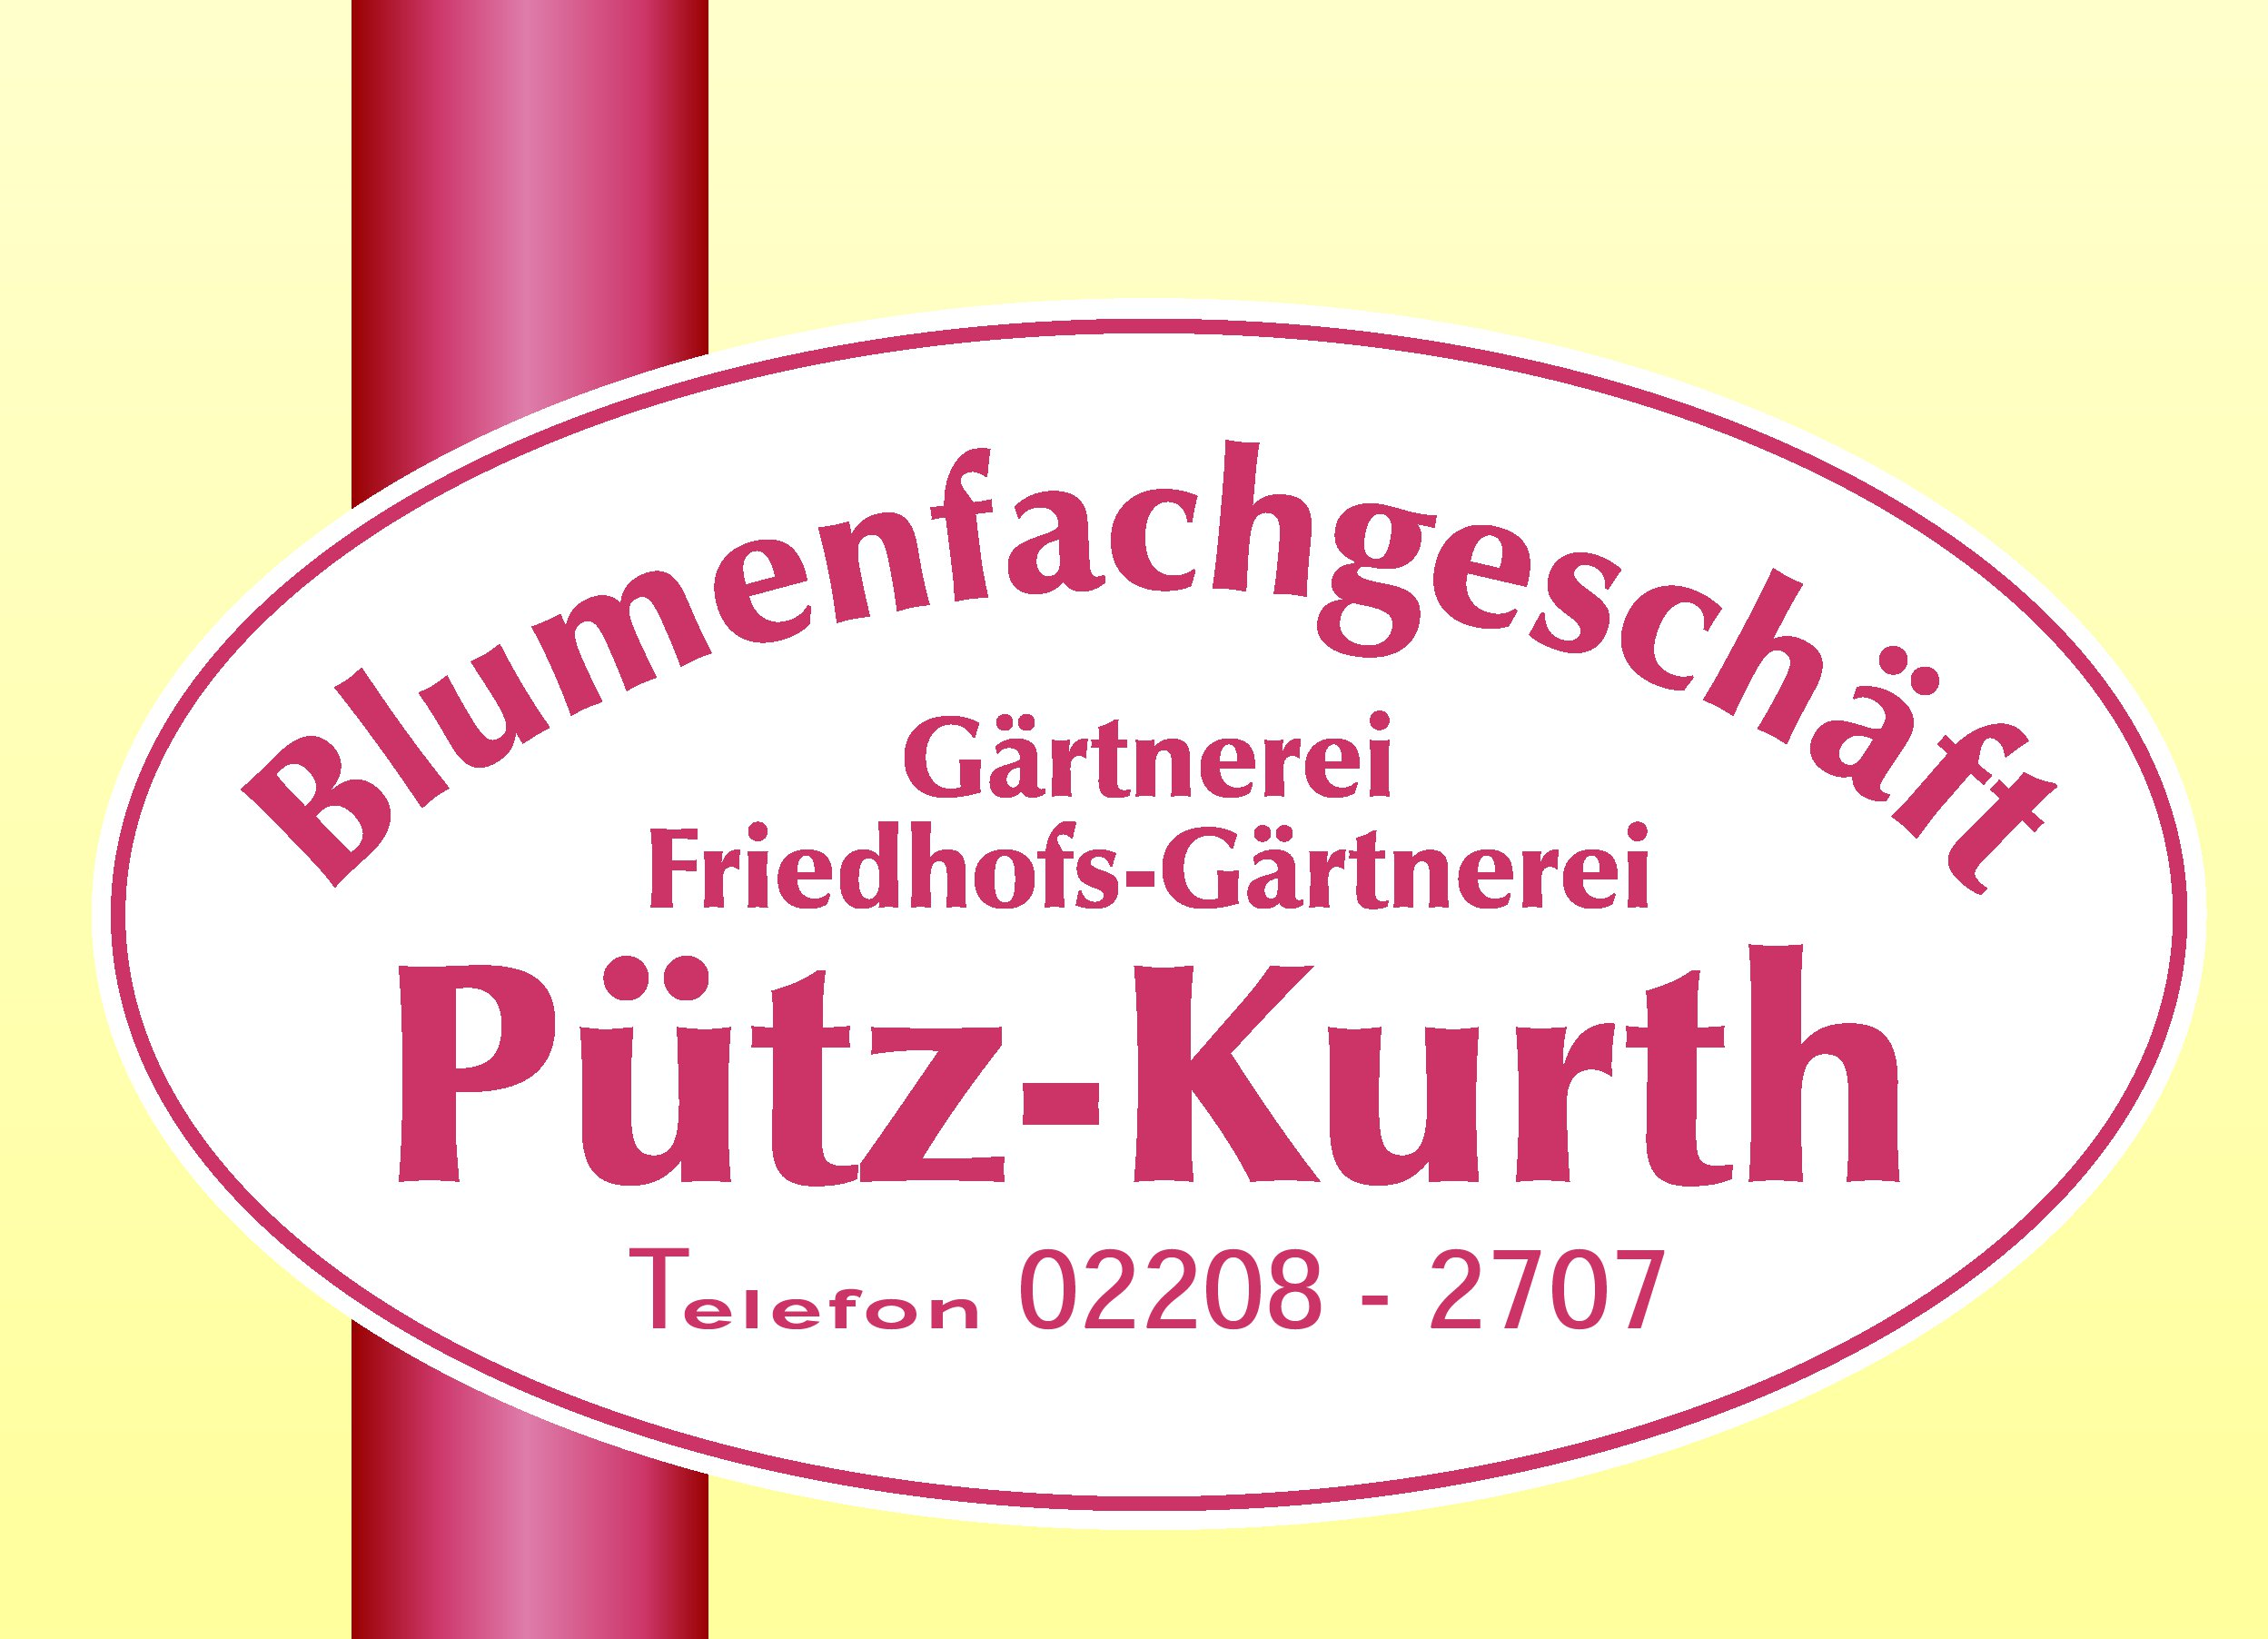 Sponsorenwand-logo-pütz-kurth